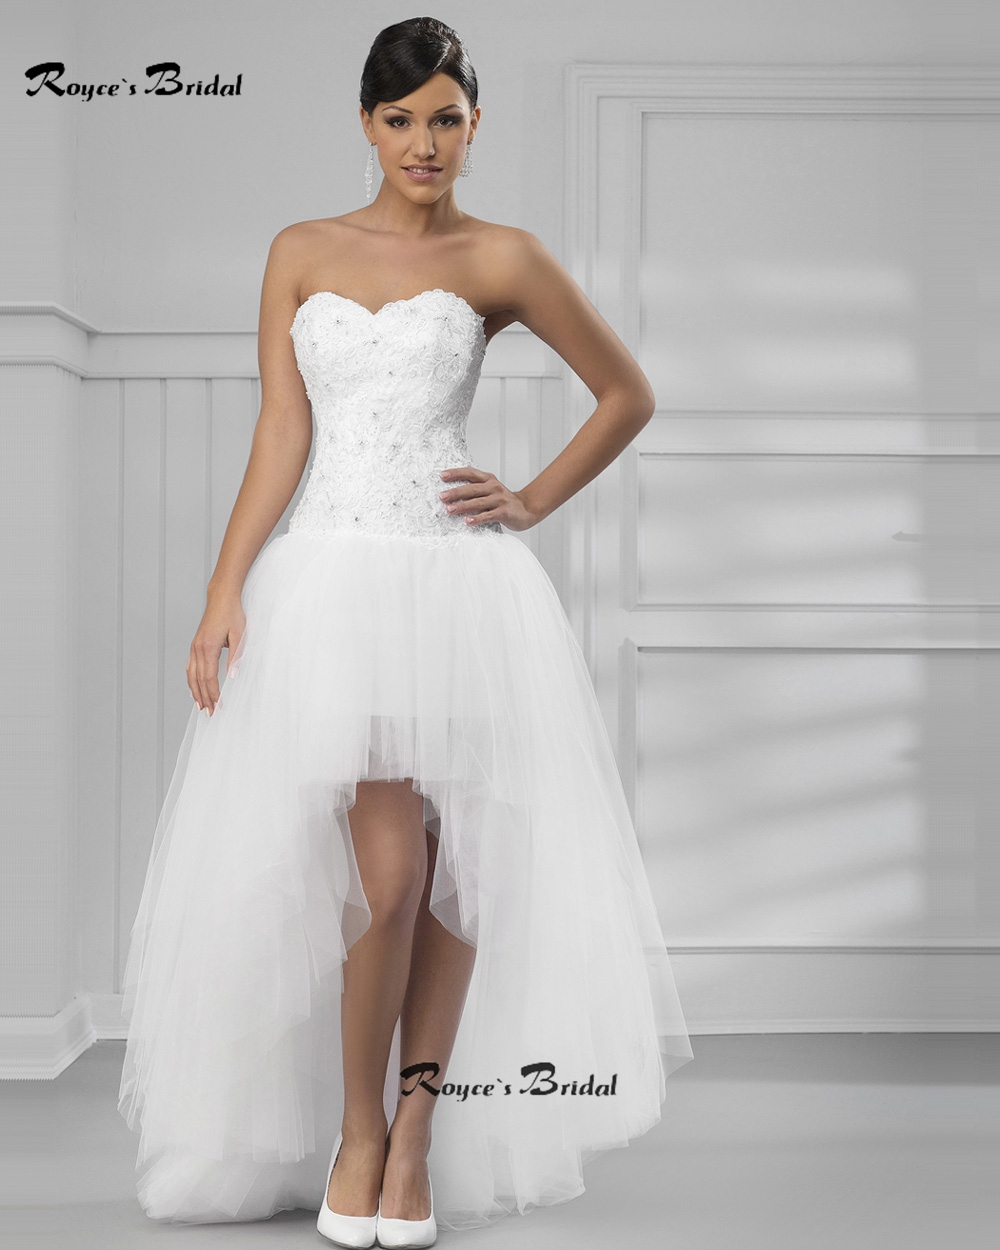 Simple Sweetheart Neckline Corset Short Frong Long Back Wedding Dresses Appliqued Tulle High Low Robe De Mairee In From Weddings Events On